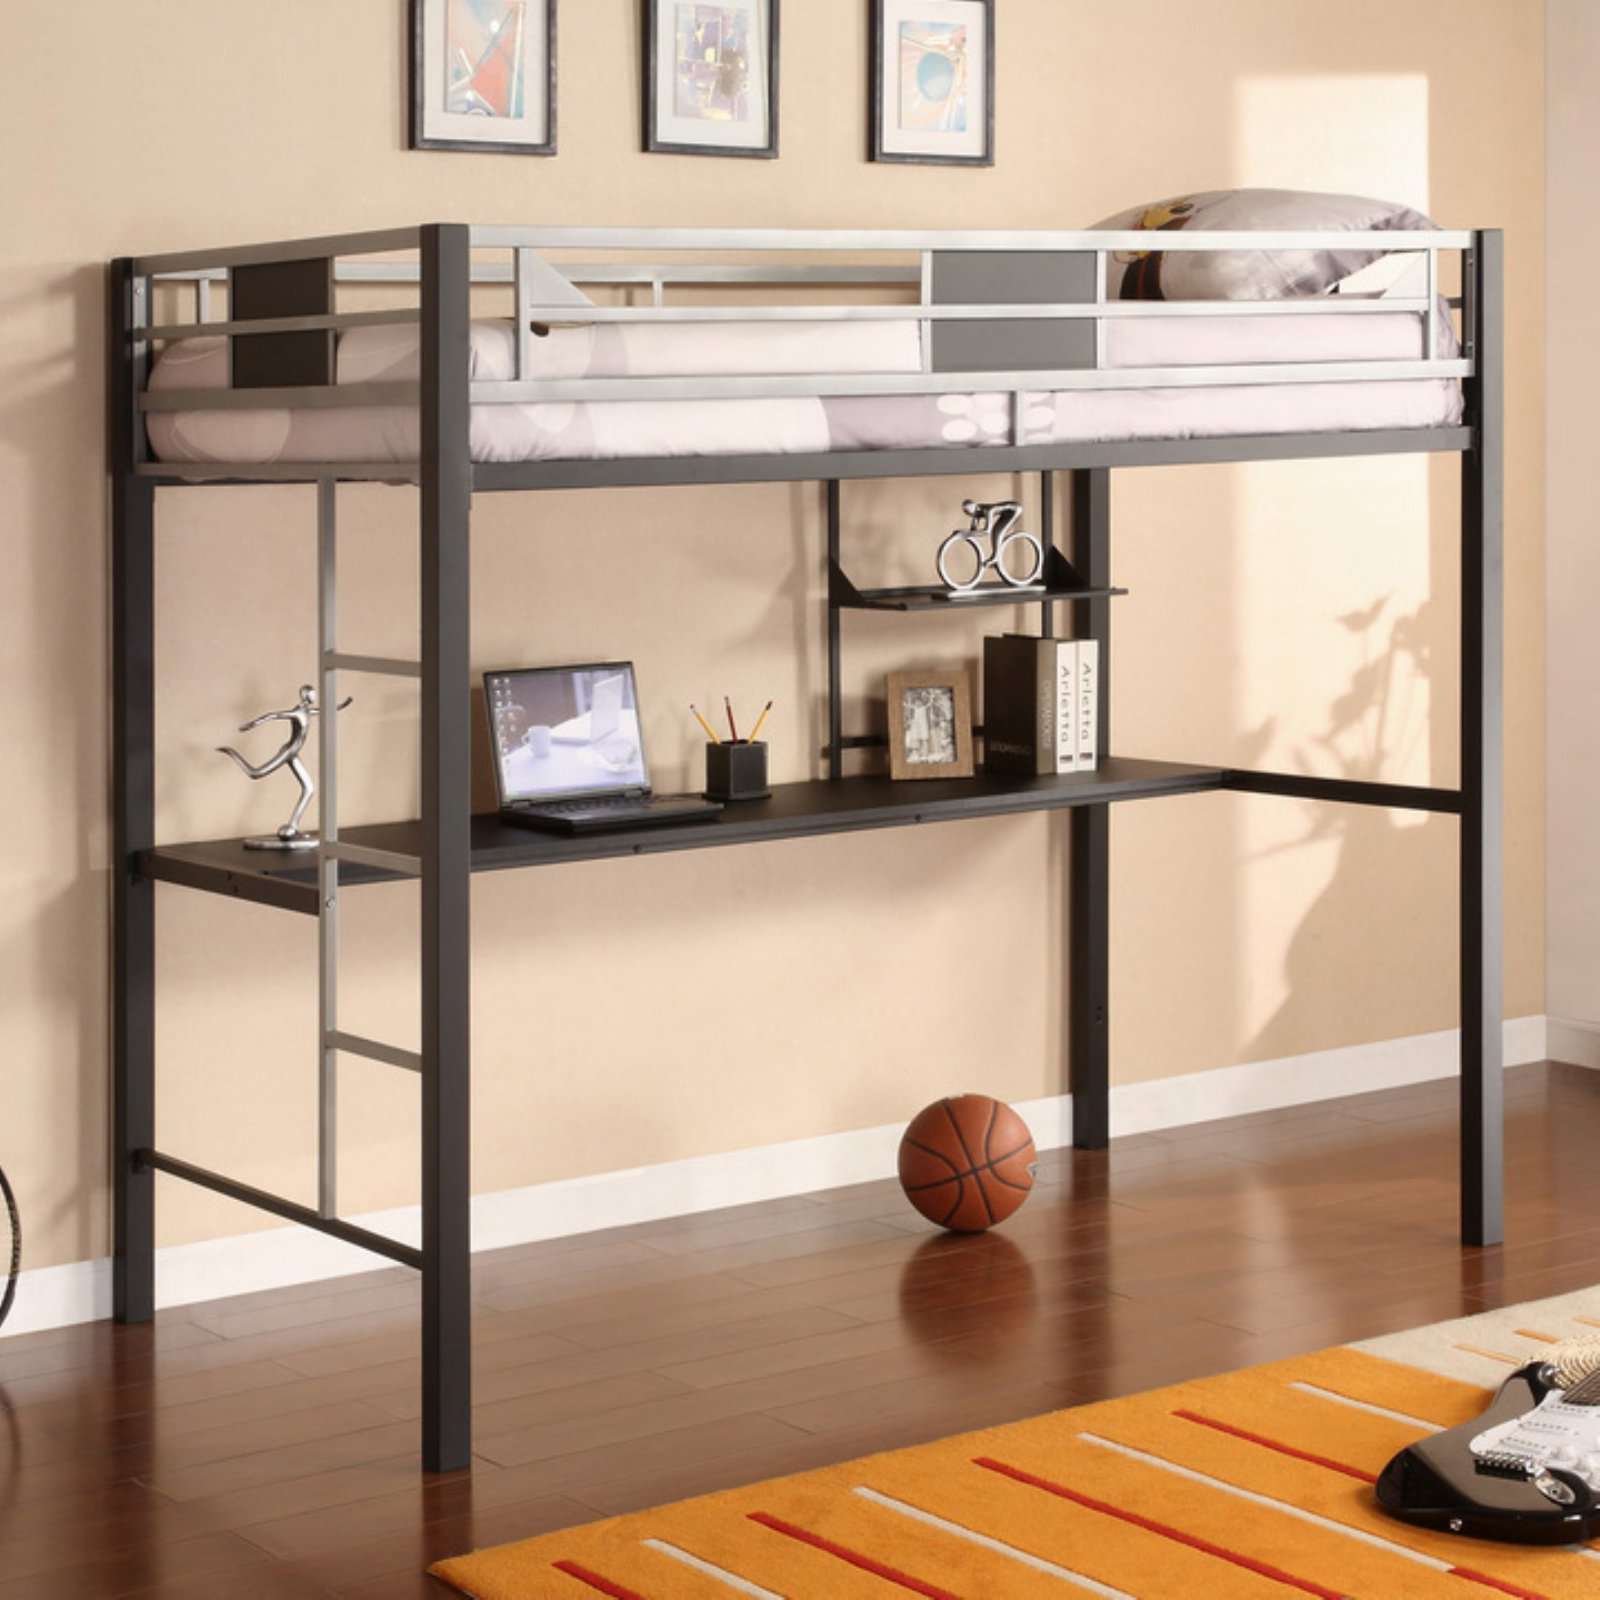 Bunk Bed With Room Under full bunkbeds with desk under